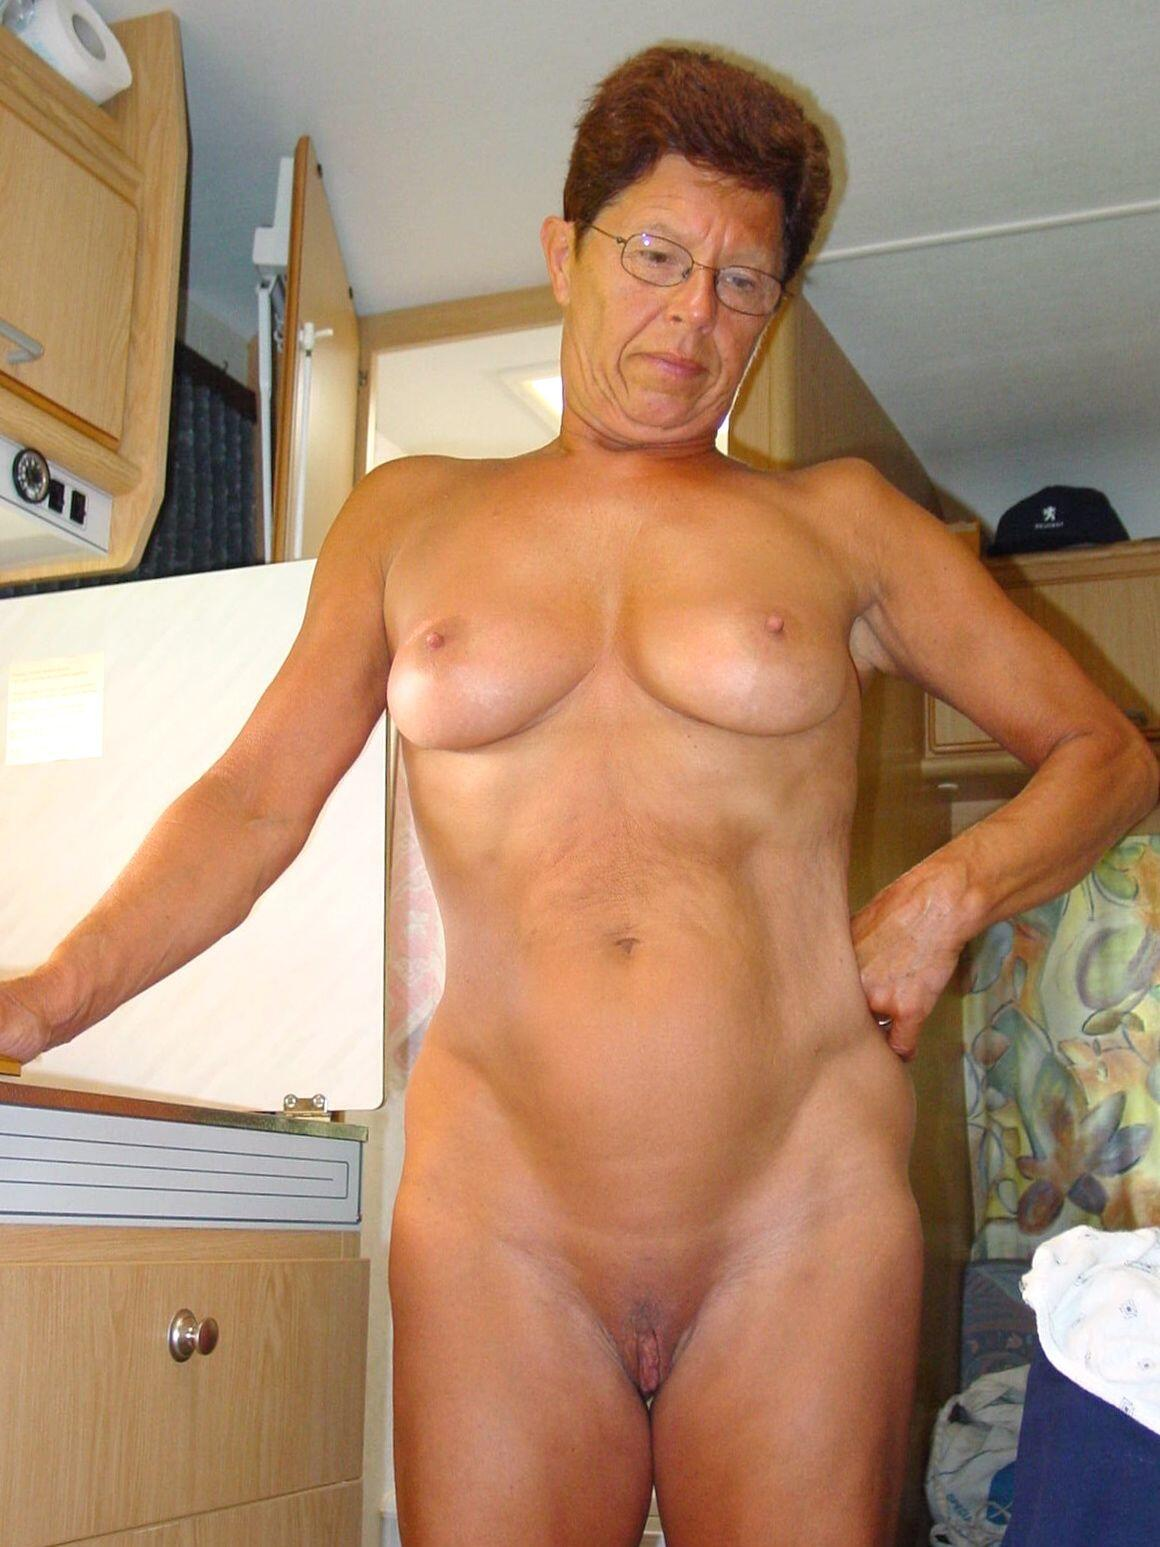 Mature slut friend likes being naked. real nudity mature